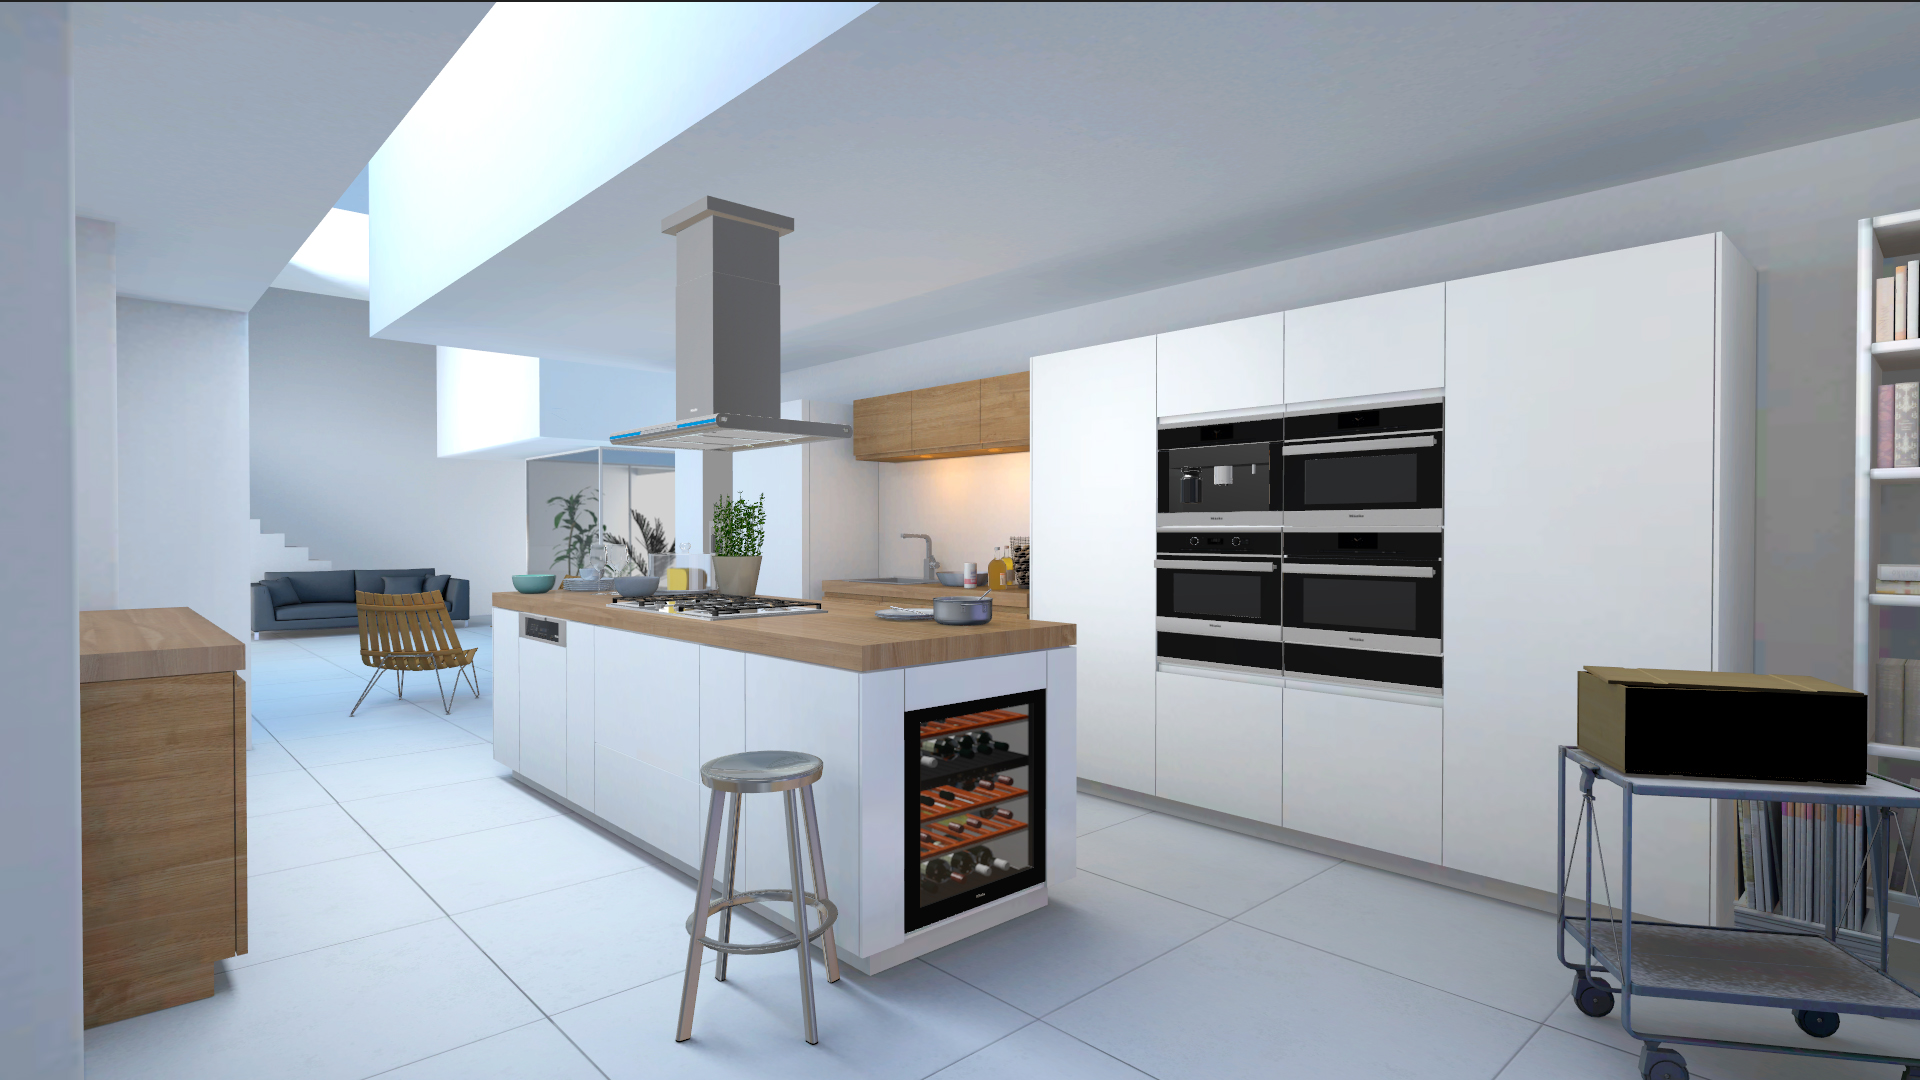 kitchen appliance visualizer redplant realtime studio miele kitchen appliance visualizer of unity with kitchen white